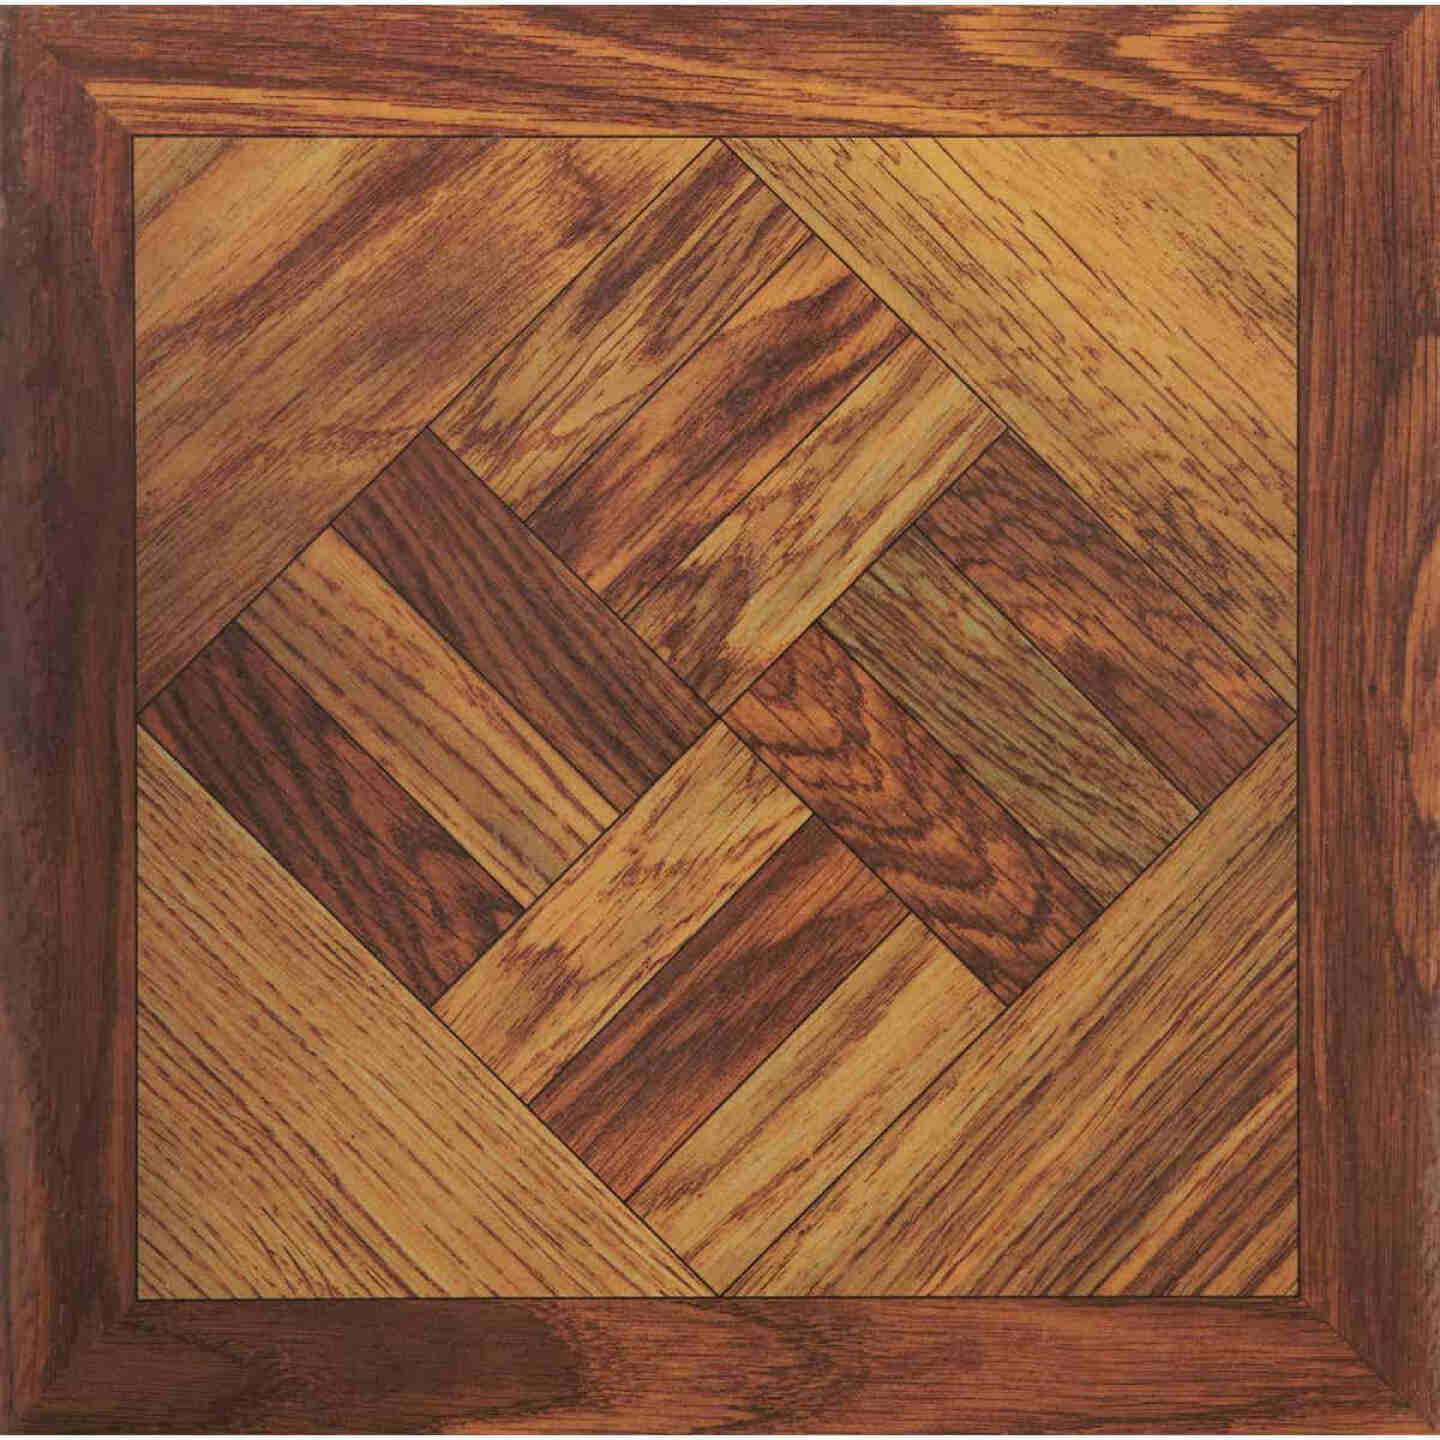 Home Impressions Wood Parquet 12 In. x 12 In. Vinyl Floor Tile (45 Sq. Ft./Box) Image 1